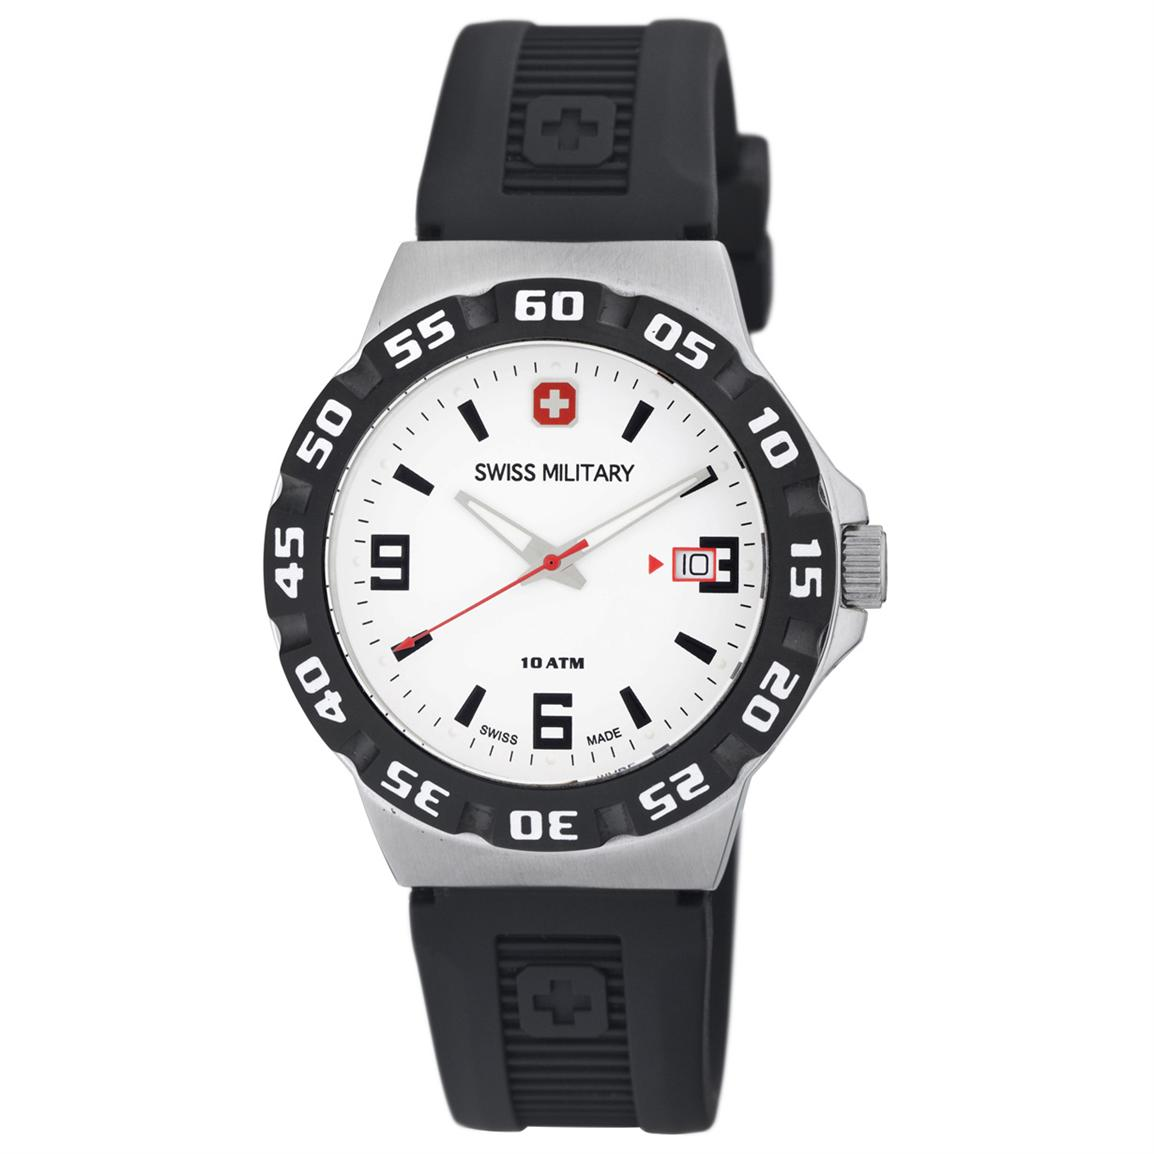 Men's Swiss Military Calibre Racer Watch with Rubber Strap, White